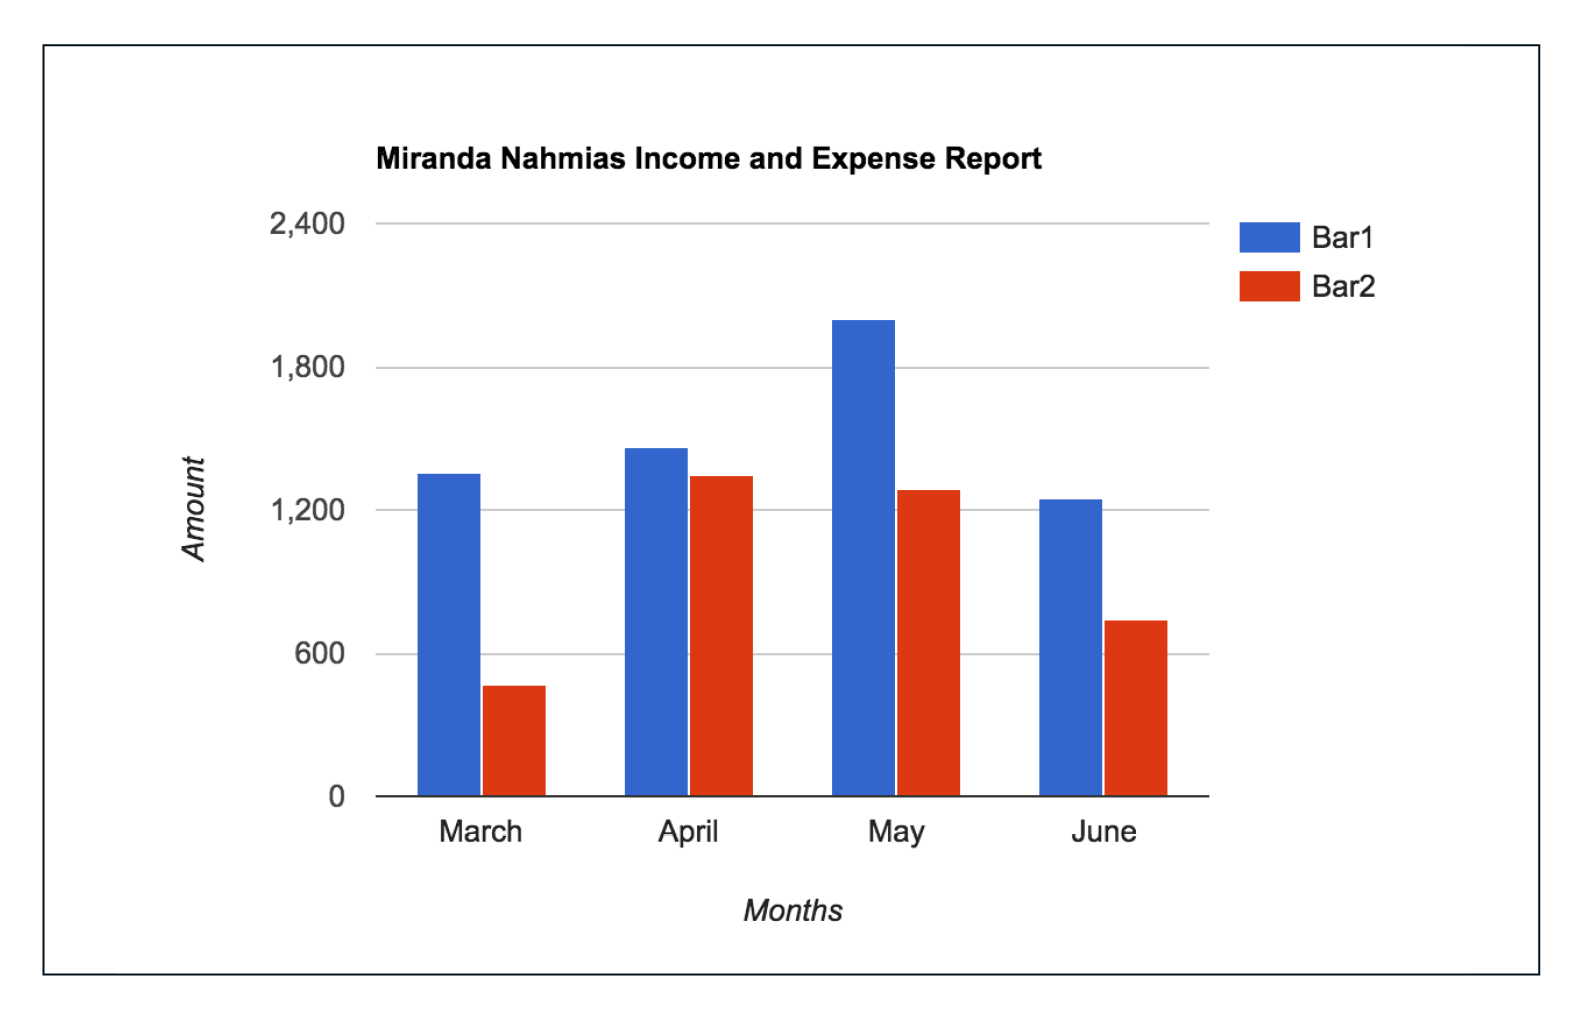 Miranda Nahmias Income and Expense Analysis